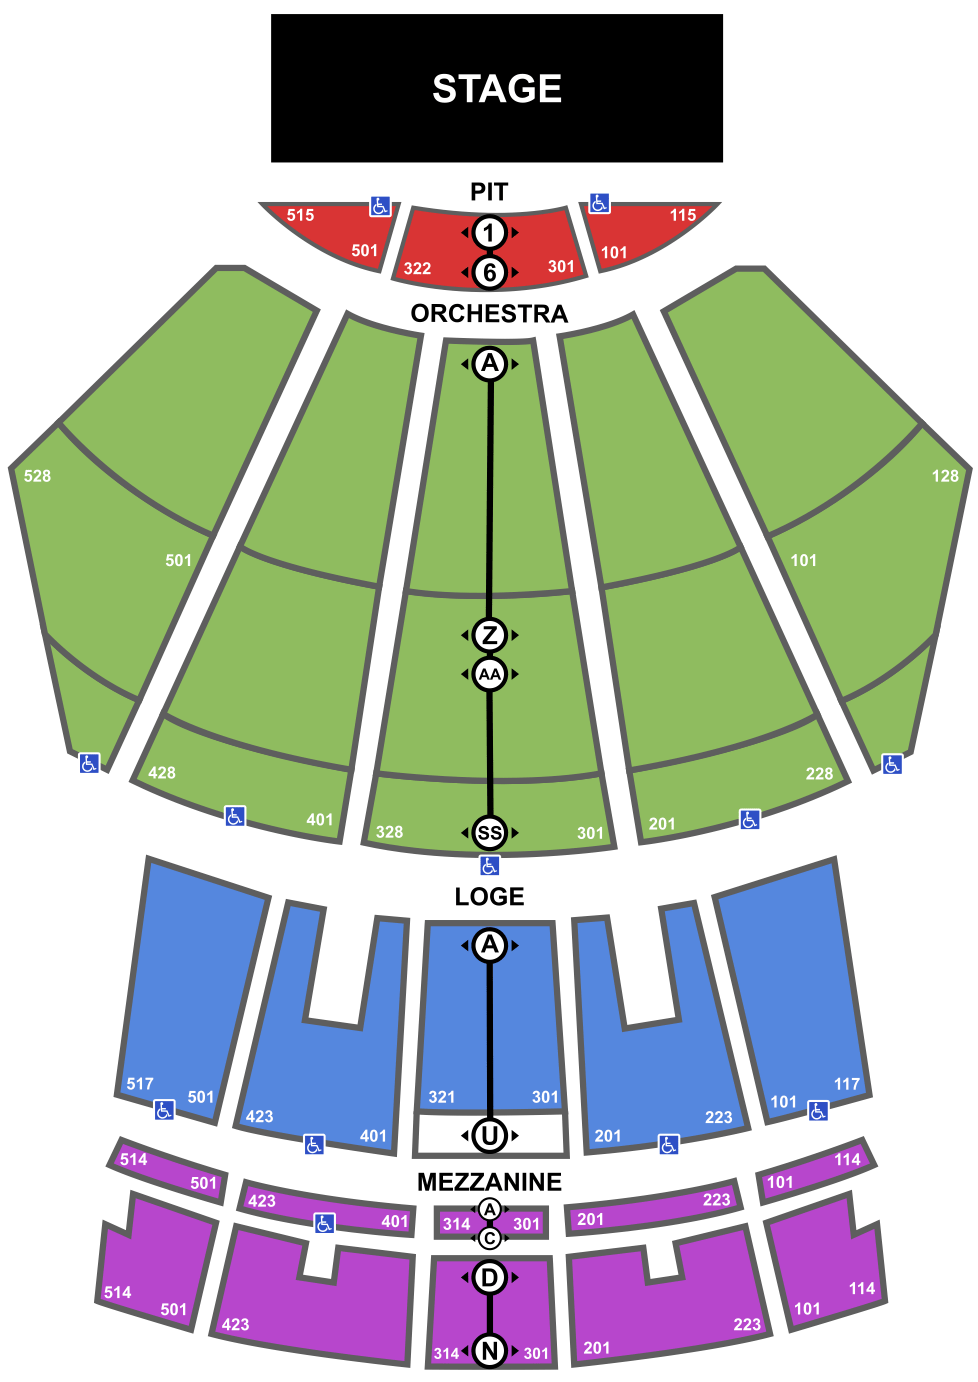 At T Center Seating Chart With Rows : center, seating, chart, Seating, Microsoft, Theater